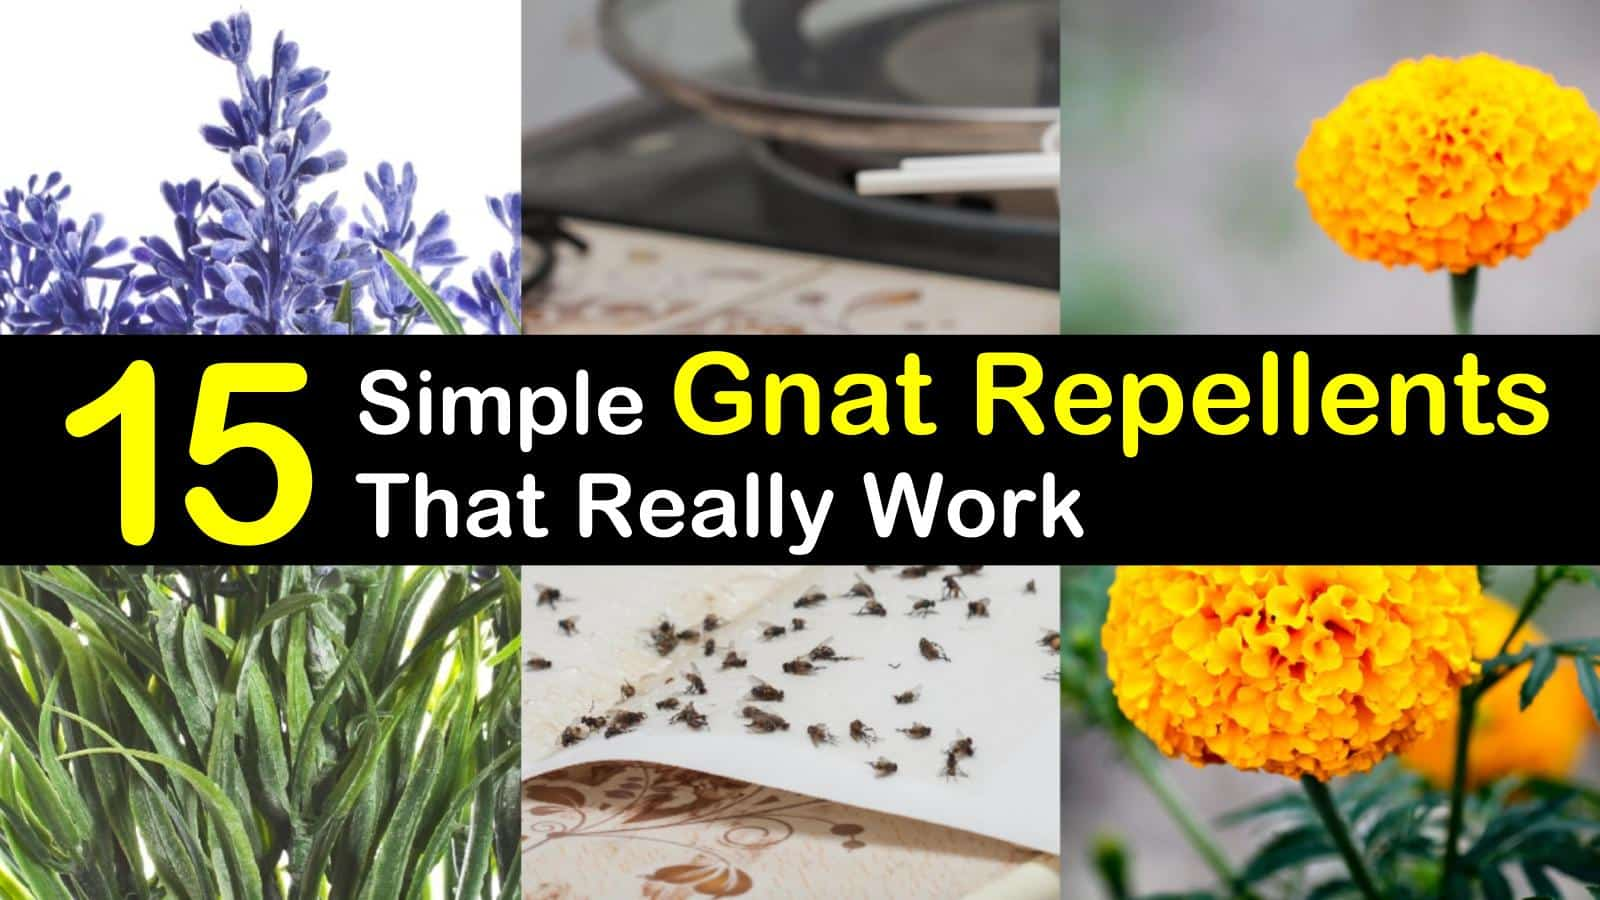 15 Simple Gnat Repellents That Really Work titlimg1